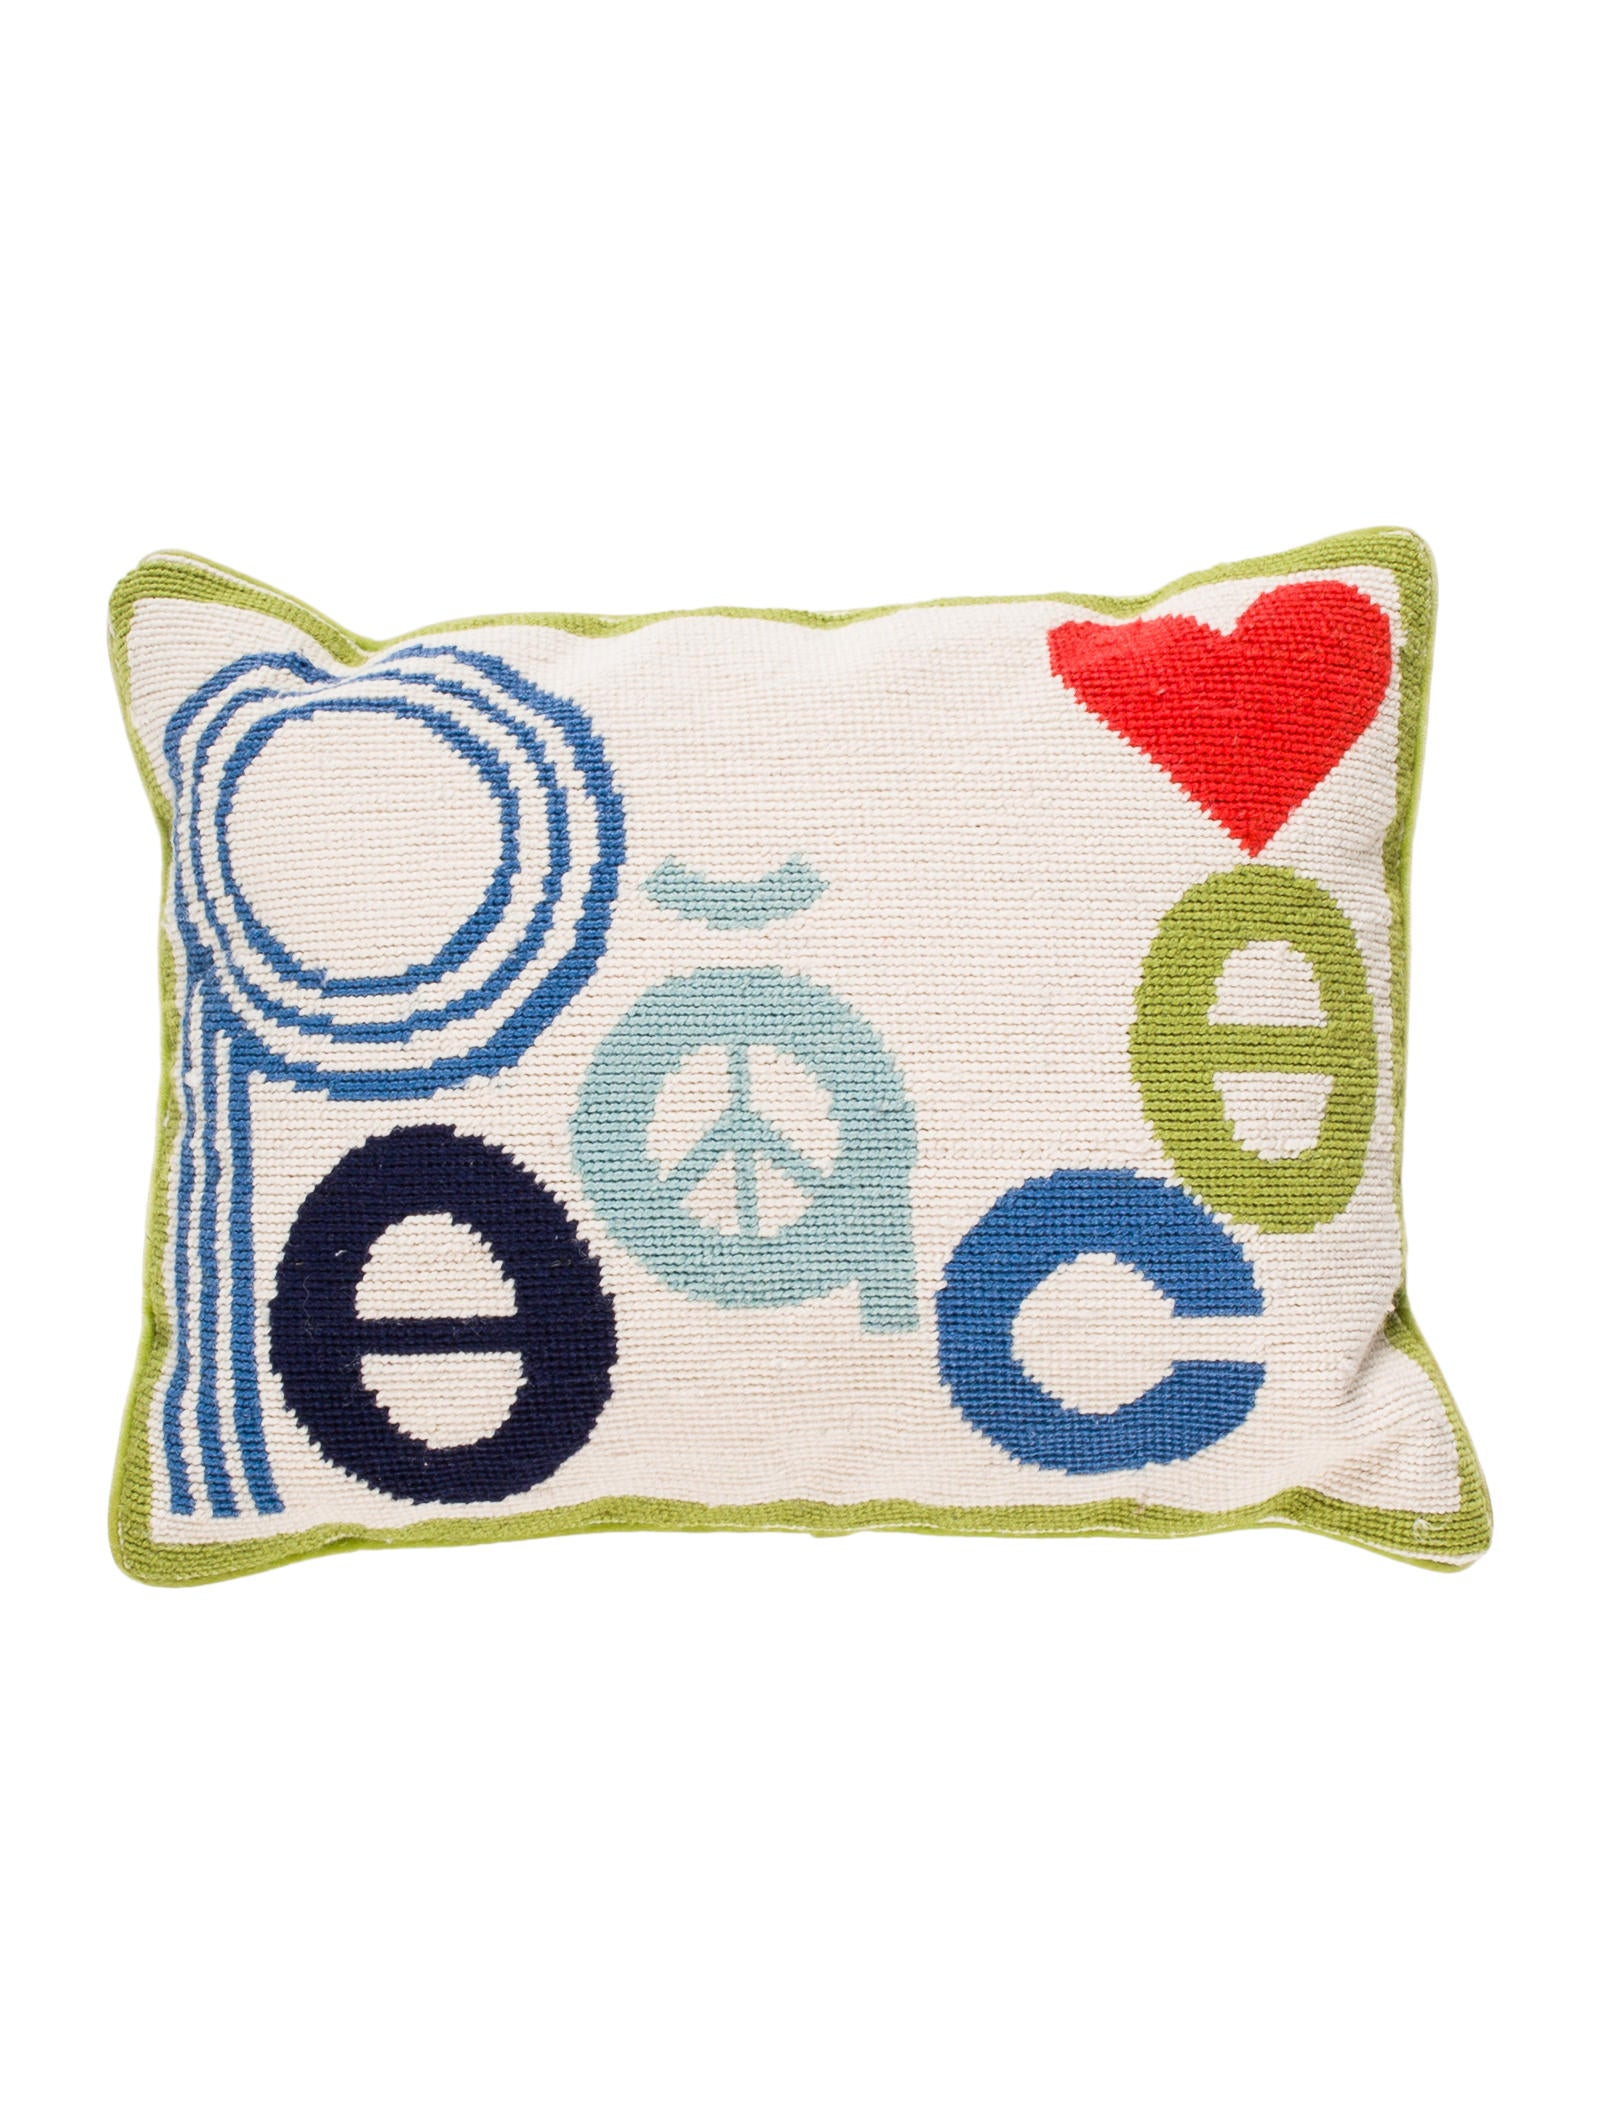 Throw Pillows Justice : Jonathan Adler Peace Mod Throw Pillow - Bedding And Bath - JTADL20746 The RealReal